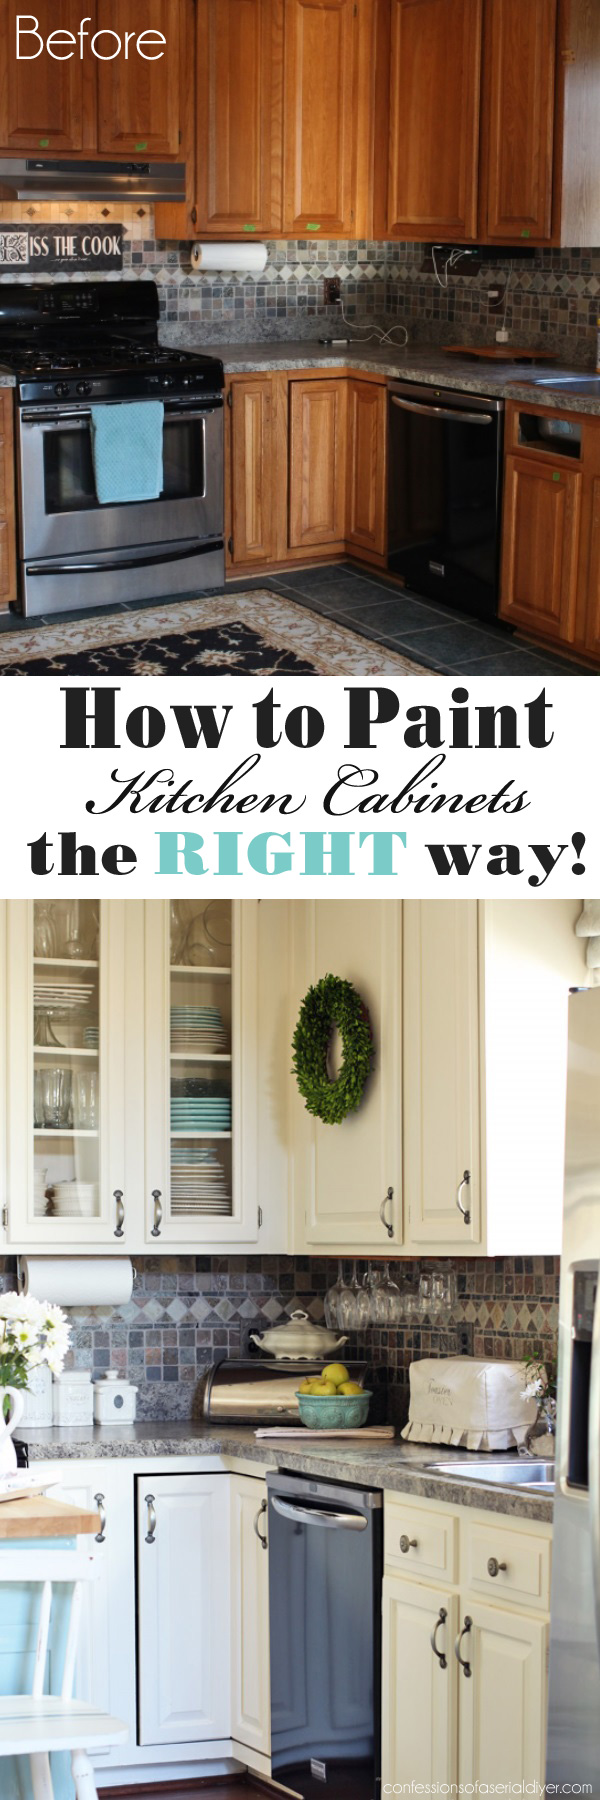 How To Paint Kitchen Cabinets A Step By Step Guide Confessions Of A Serial Do It Yourselfer